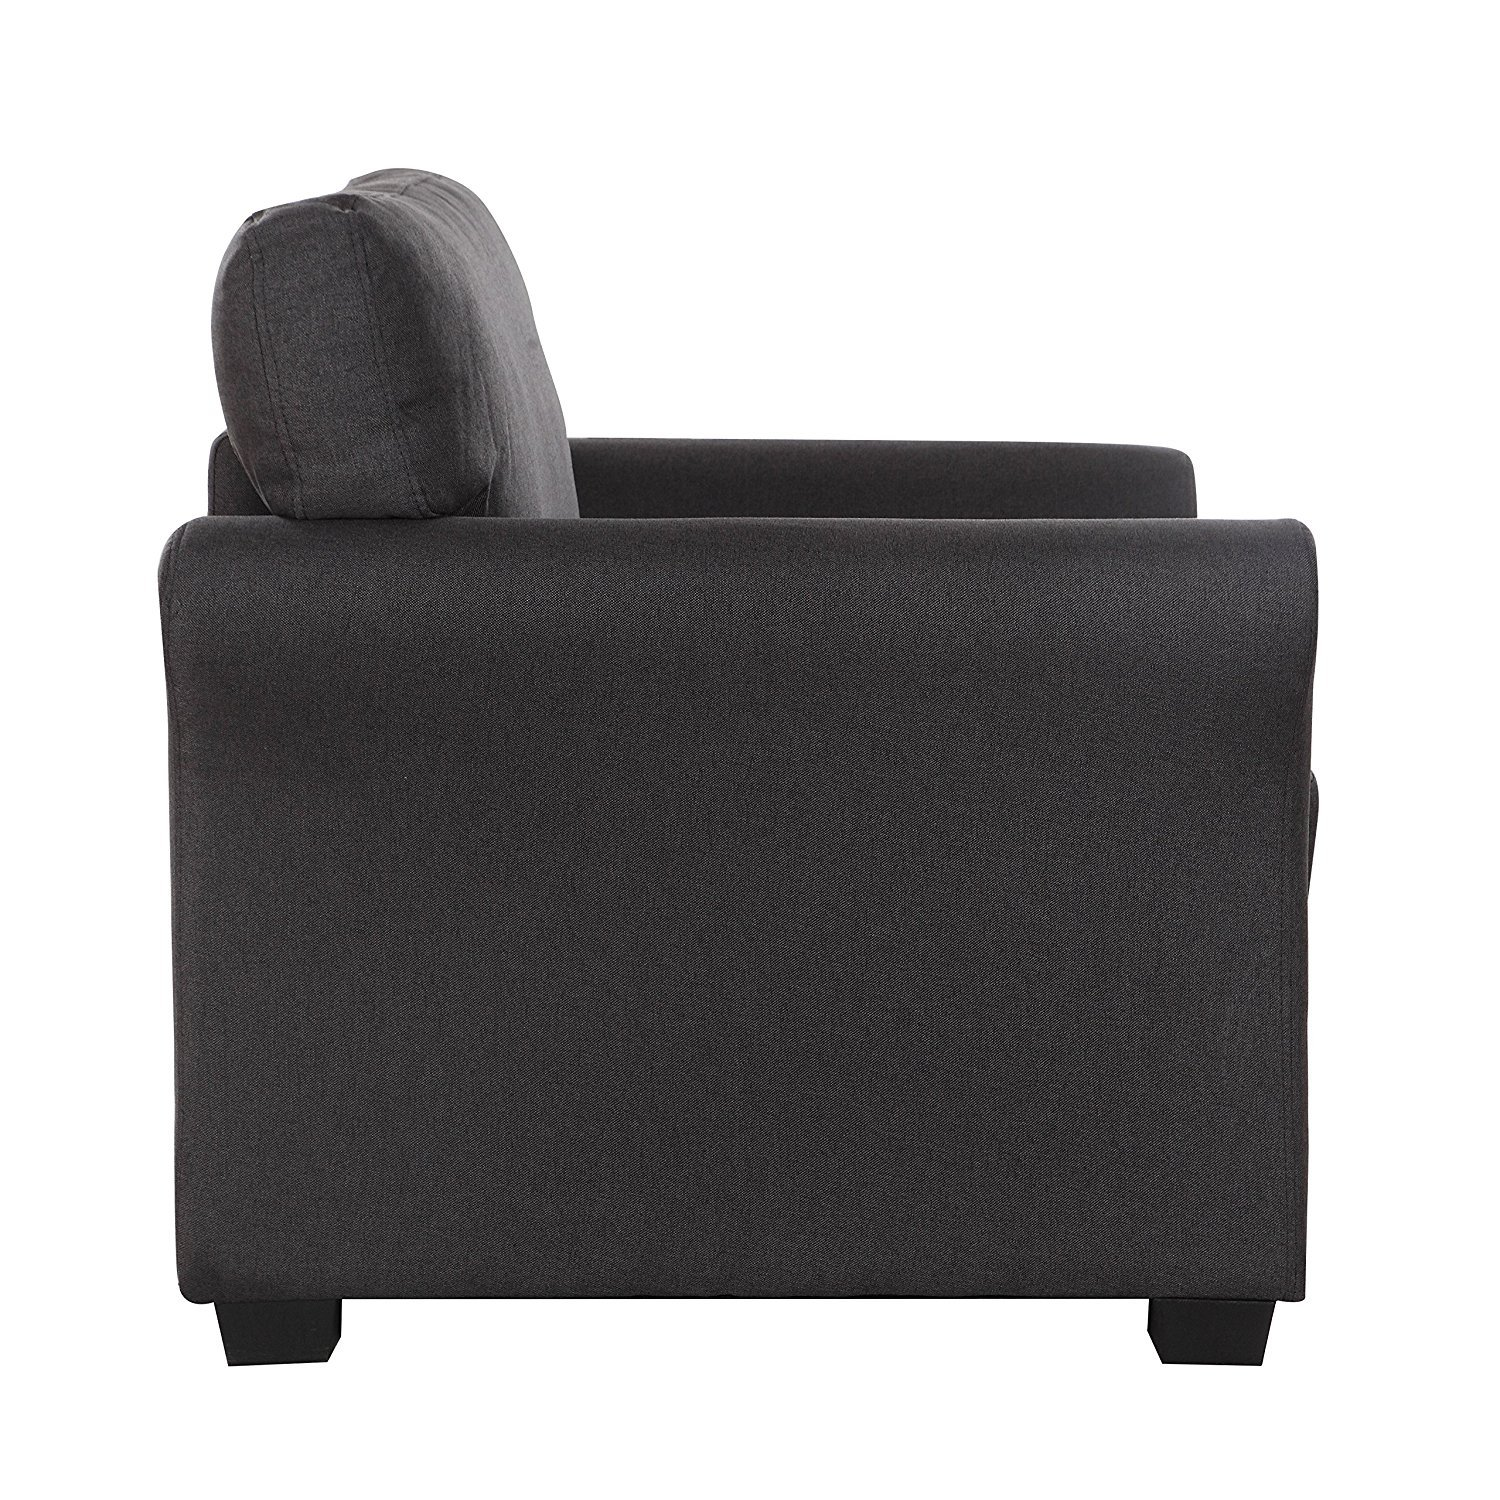 Details about Dark Grey Classic Contemporary Fabric Accent Chair Casual  Living Room Armchair